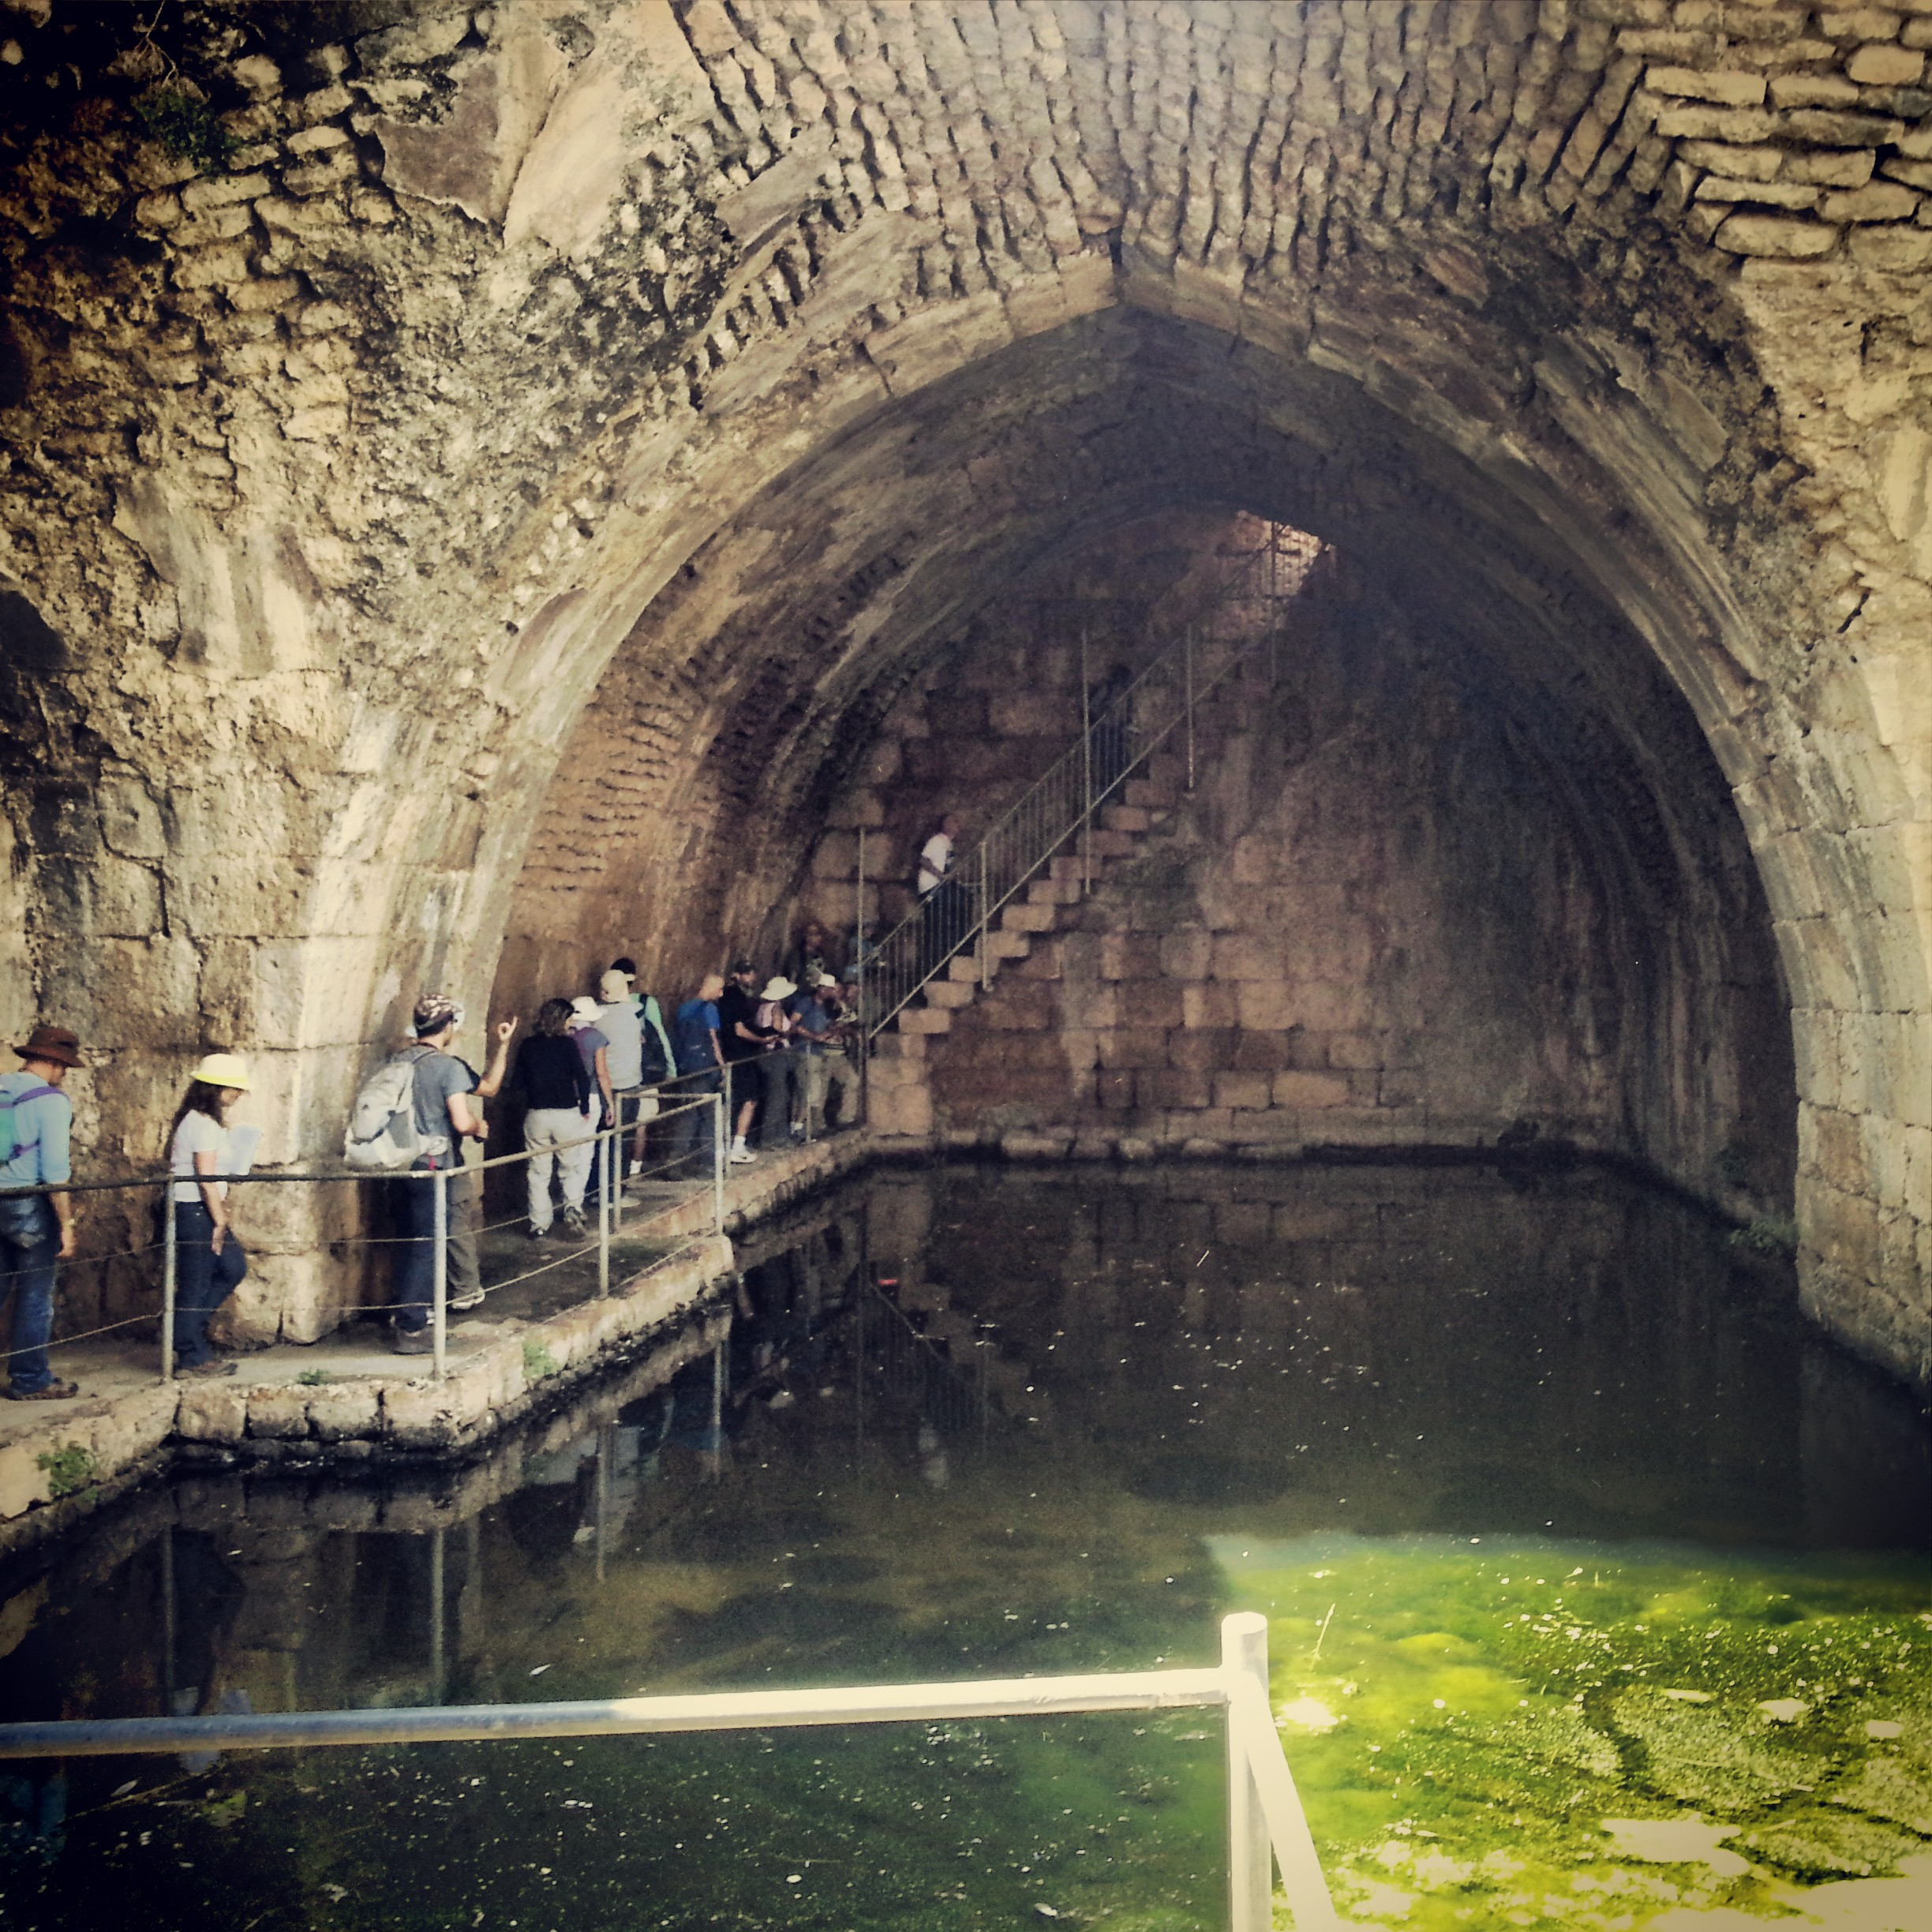 Huge cistern in the Nimrod Fortress